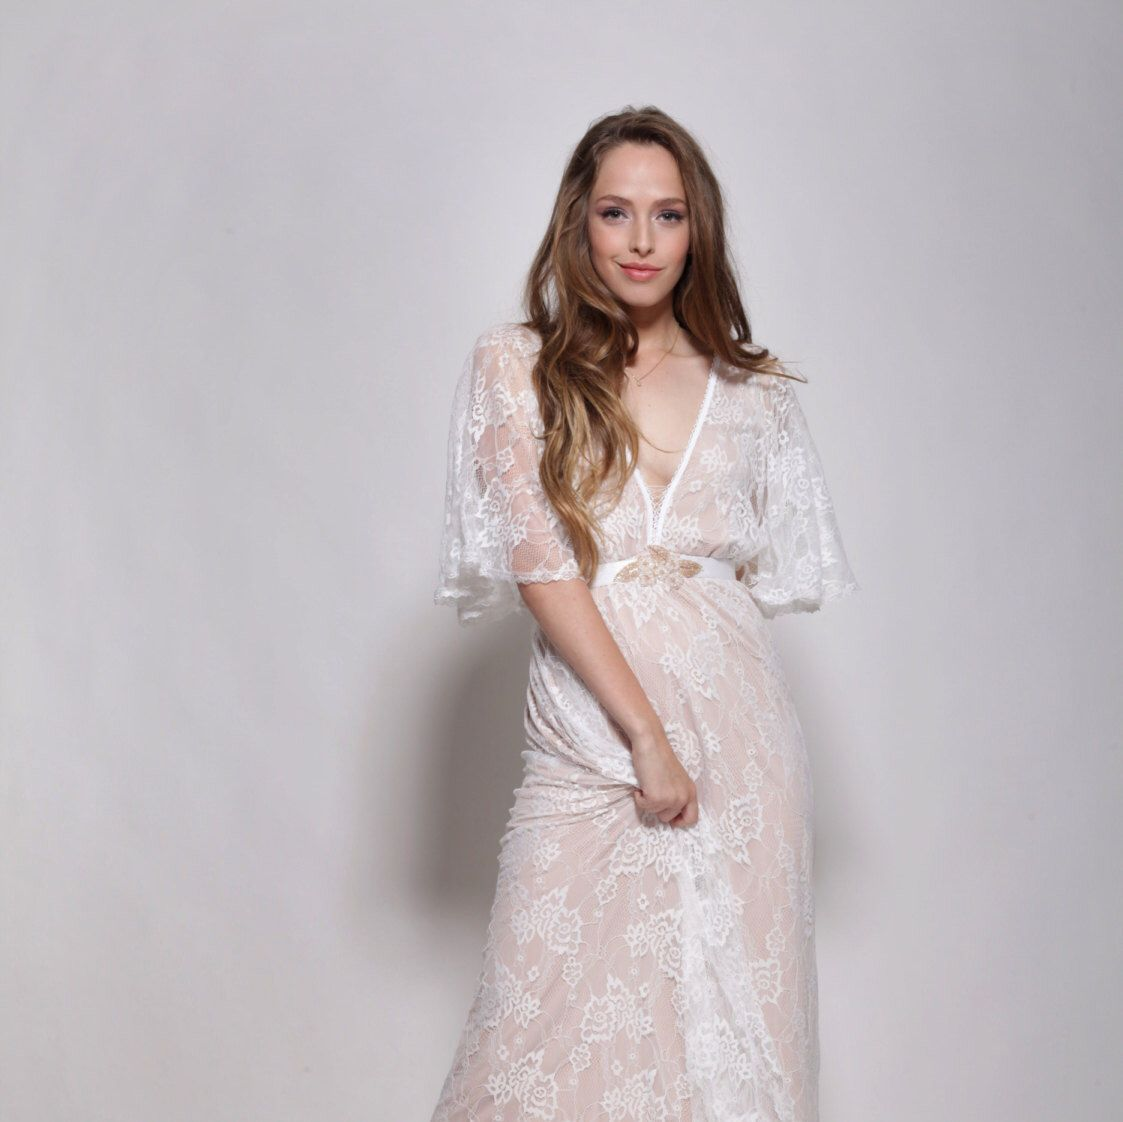 Bohemain lace wedding dresslow back lace train dressmixed lace